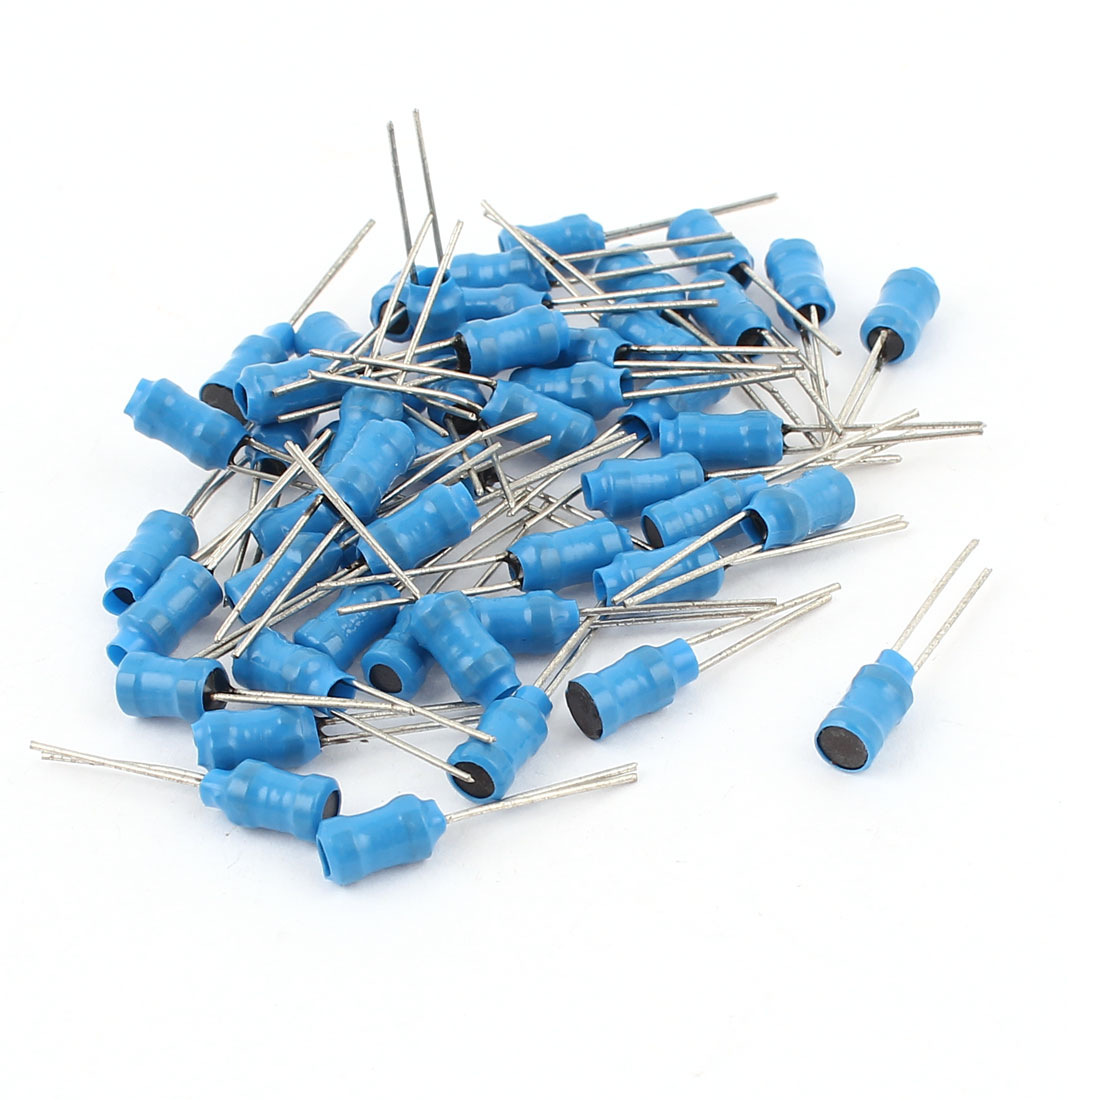 50Pcs 30mH 50mA 4x6mm 10% Tolerance Radial Lead Inductor Blue